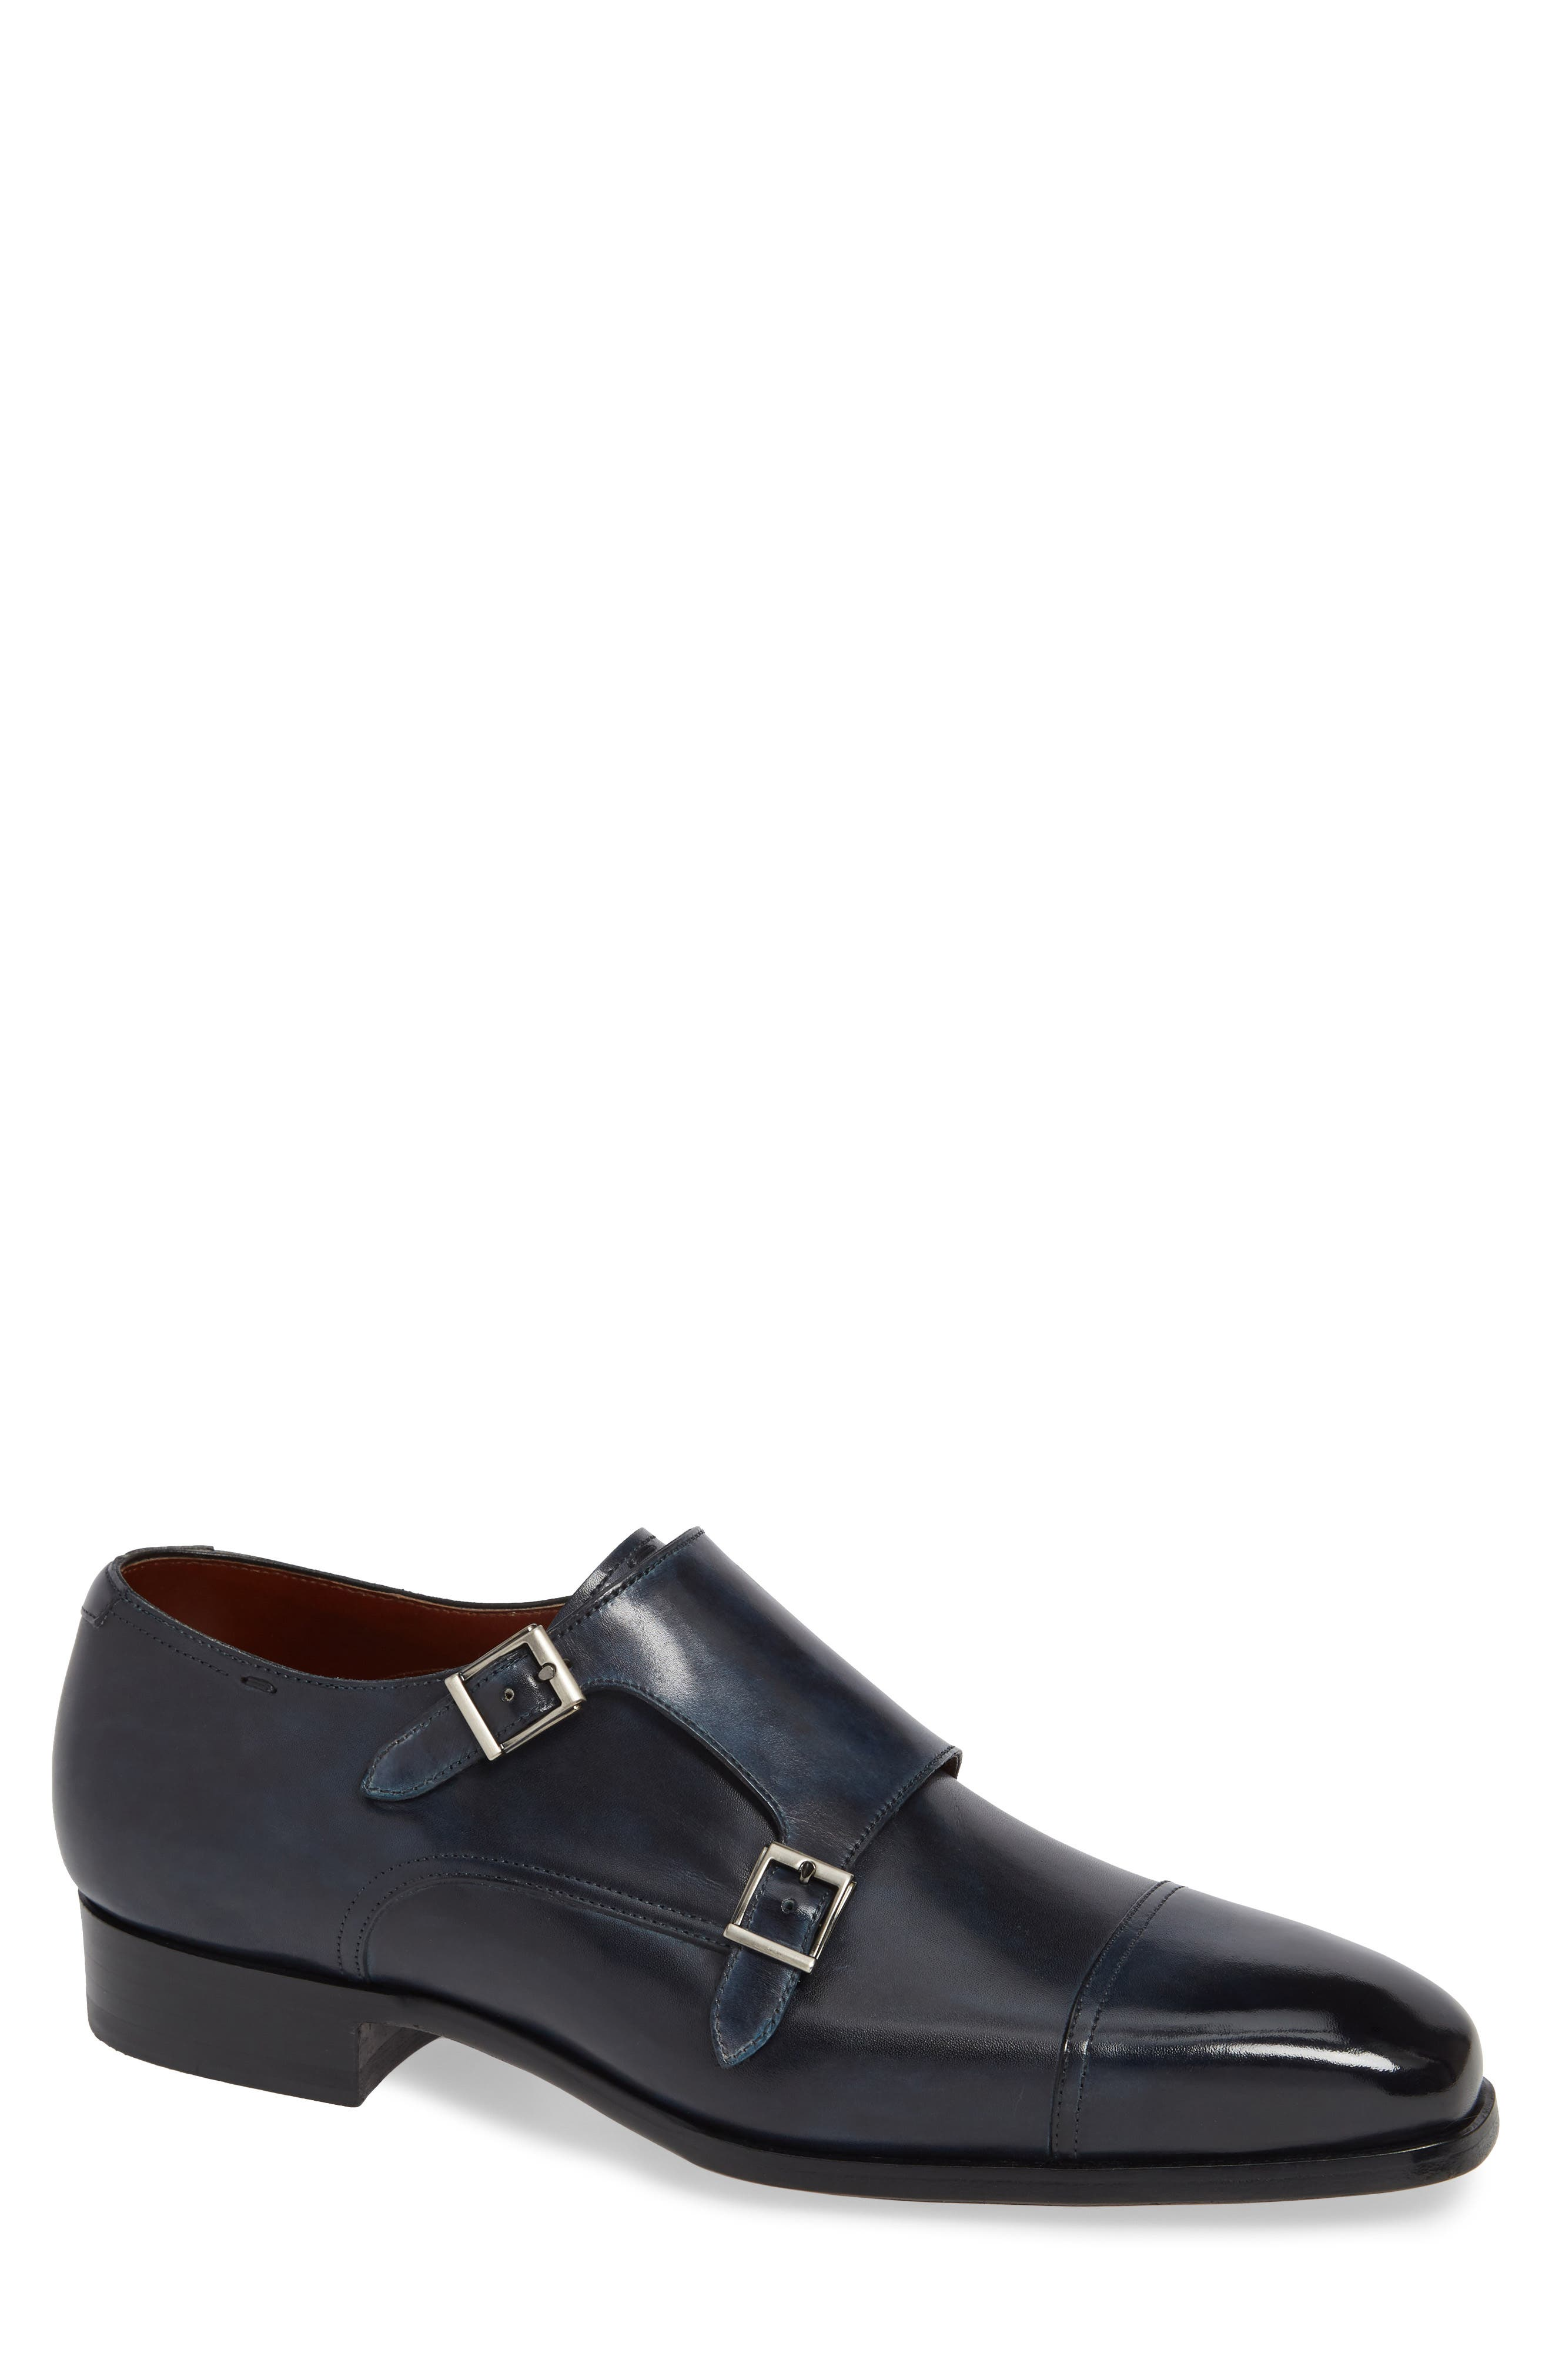 MAGNANNI,                             Wooster Double Monk Strap Shoe,                             Main thumbnail 1, color,                             NAVY LEATHER